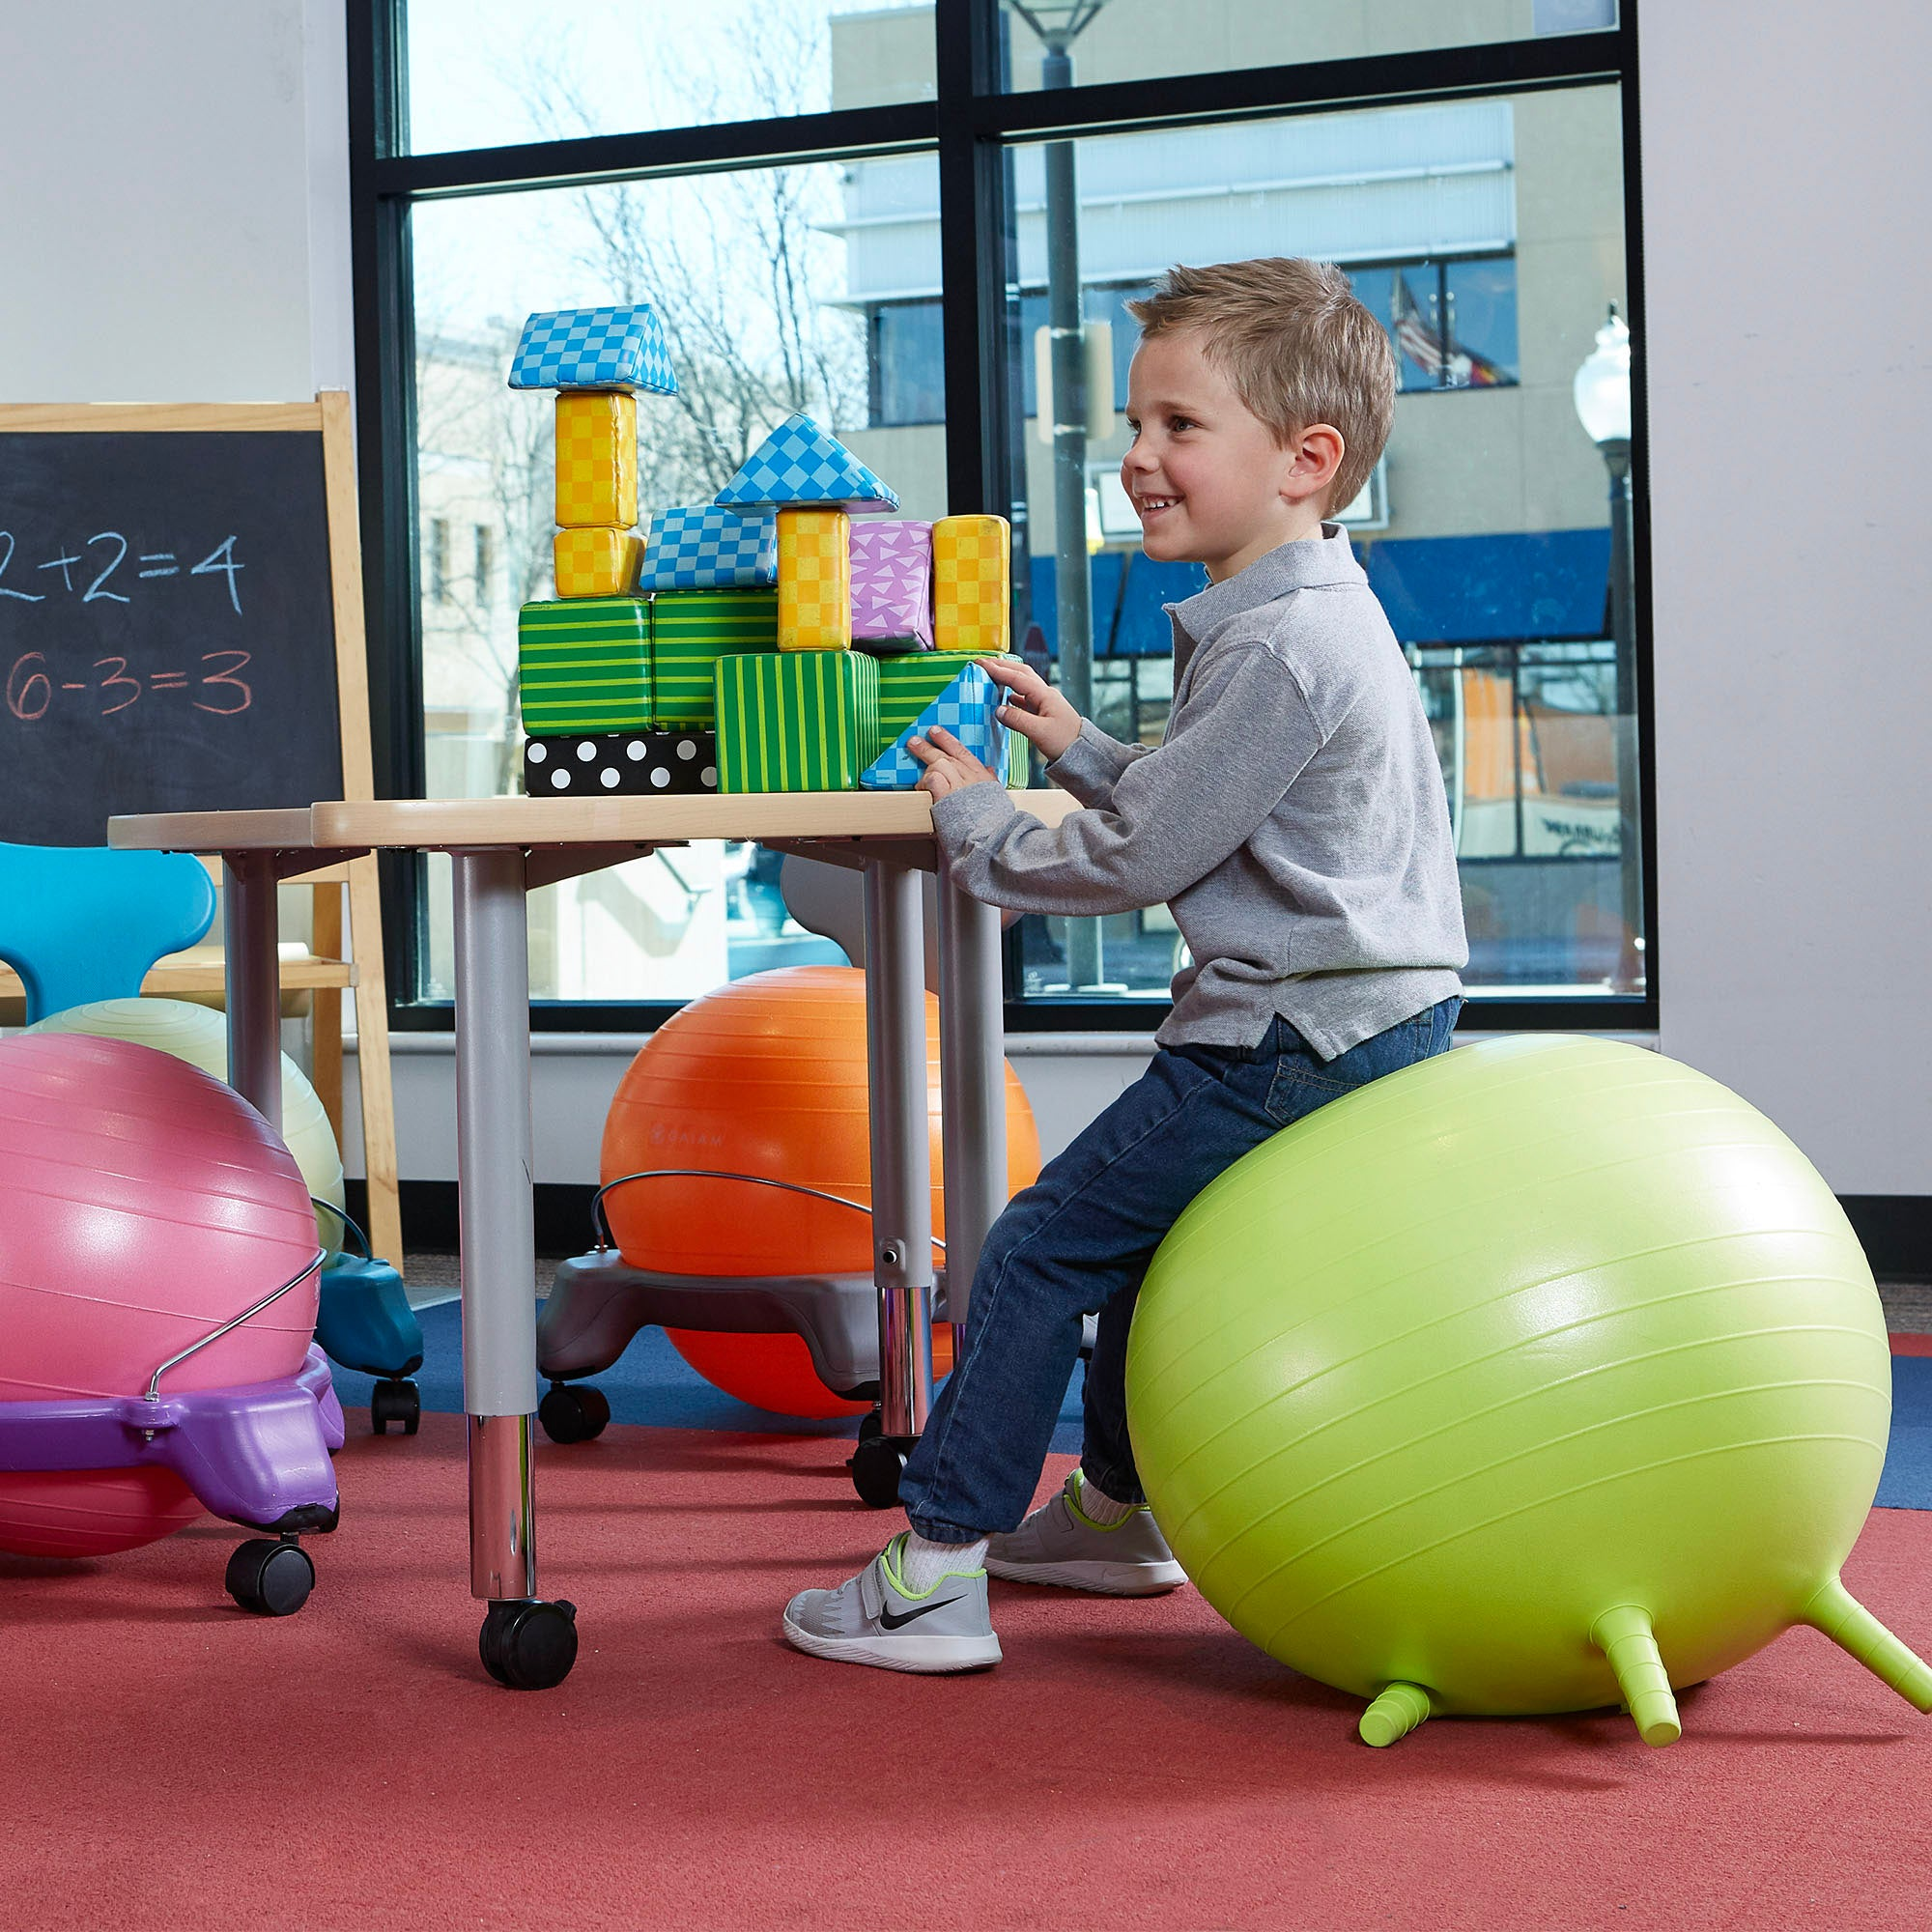 Astounding Flexible School Chair Gaiam Kids Stay N Play Childrens Caraccident5 Cool Chair Designs And Ideas Caraccident5Info